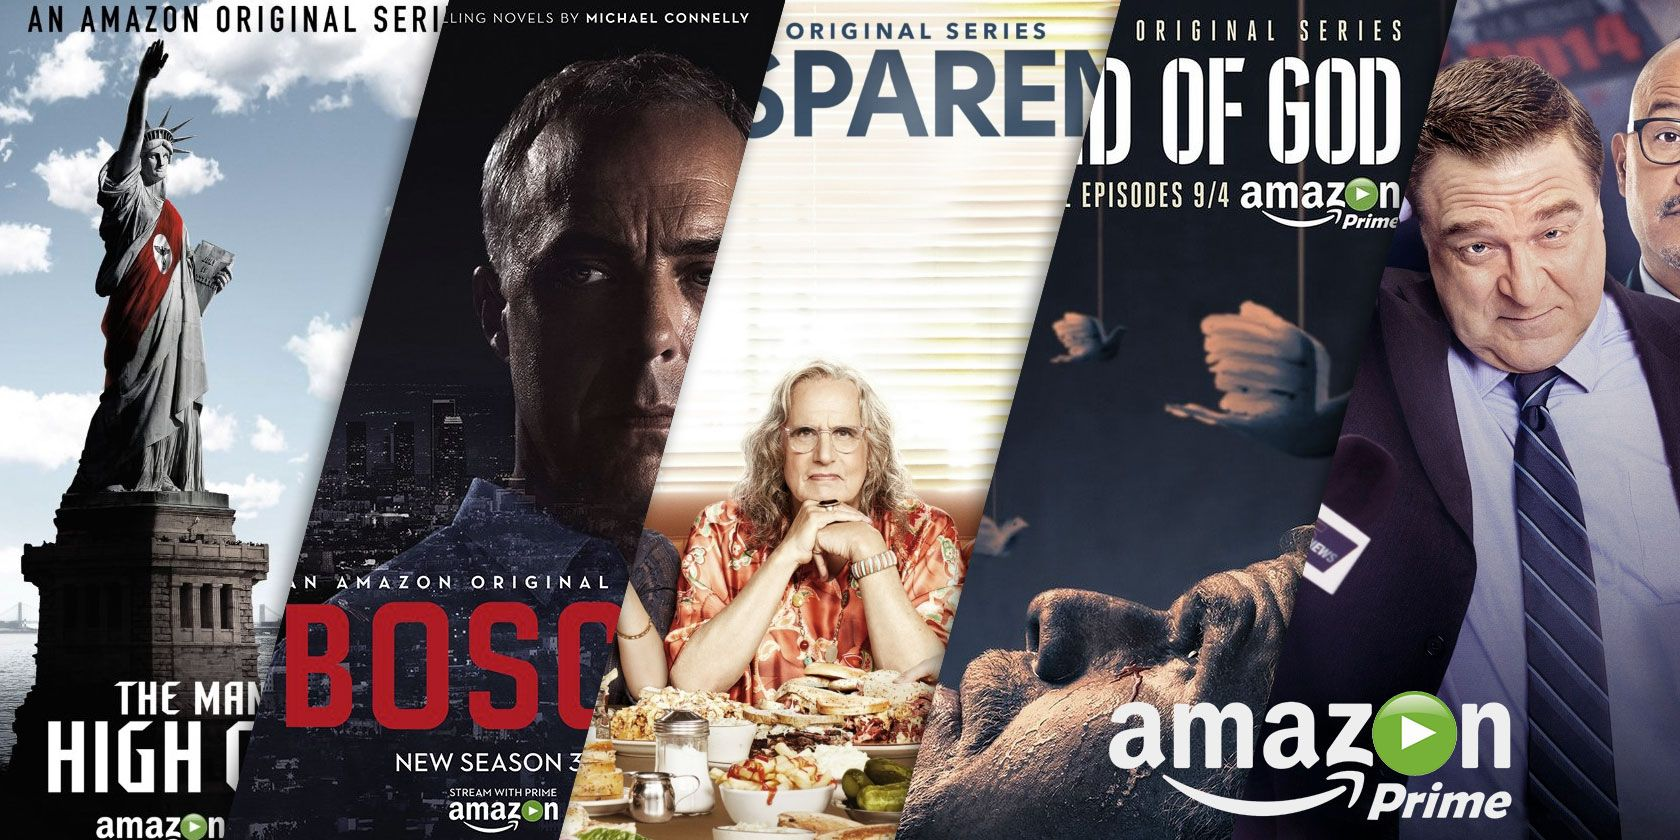 10+ TV Shows That Make Amazon Prime Worth the Money ...